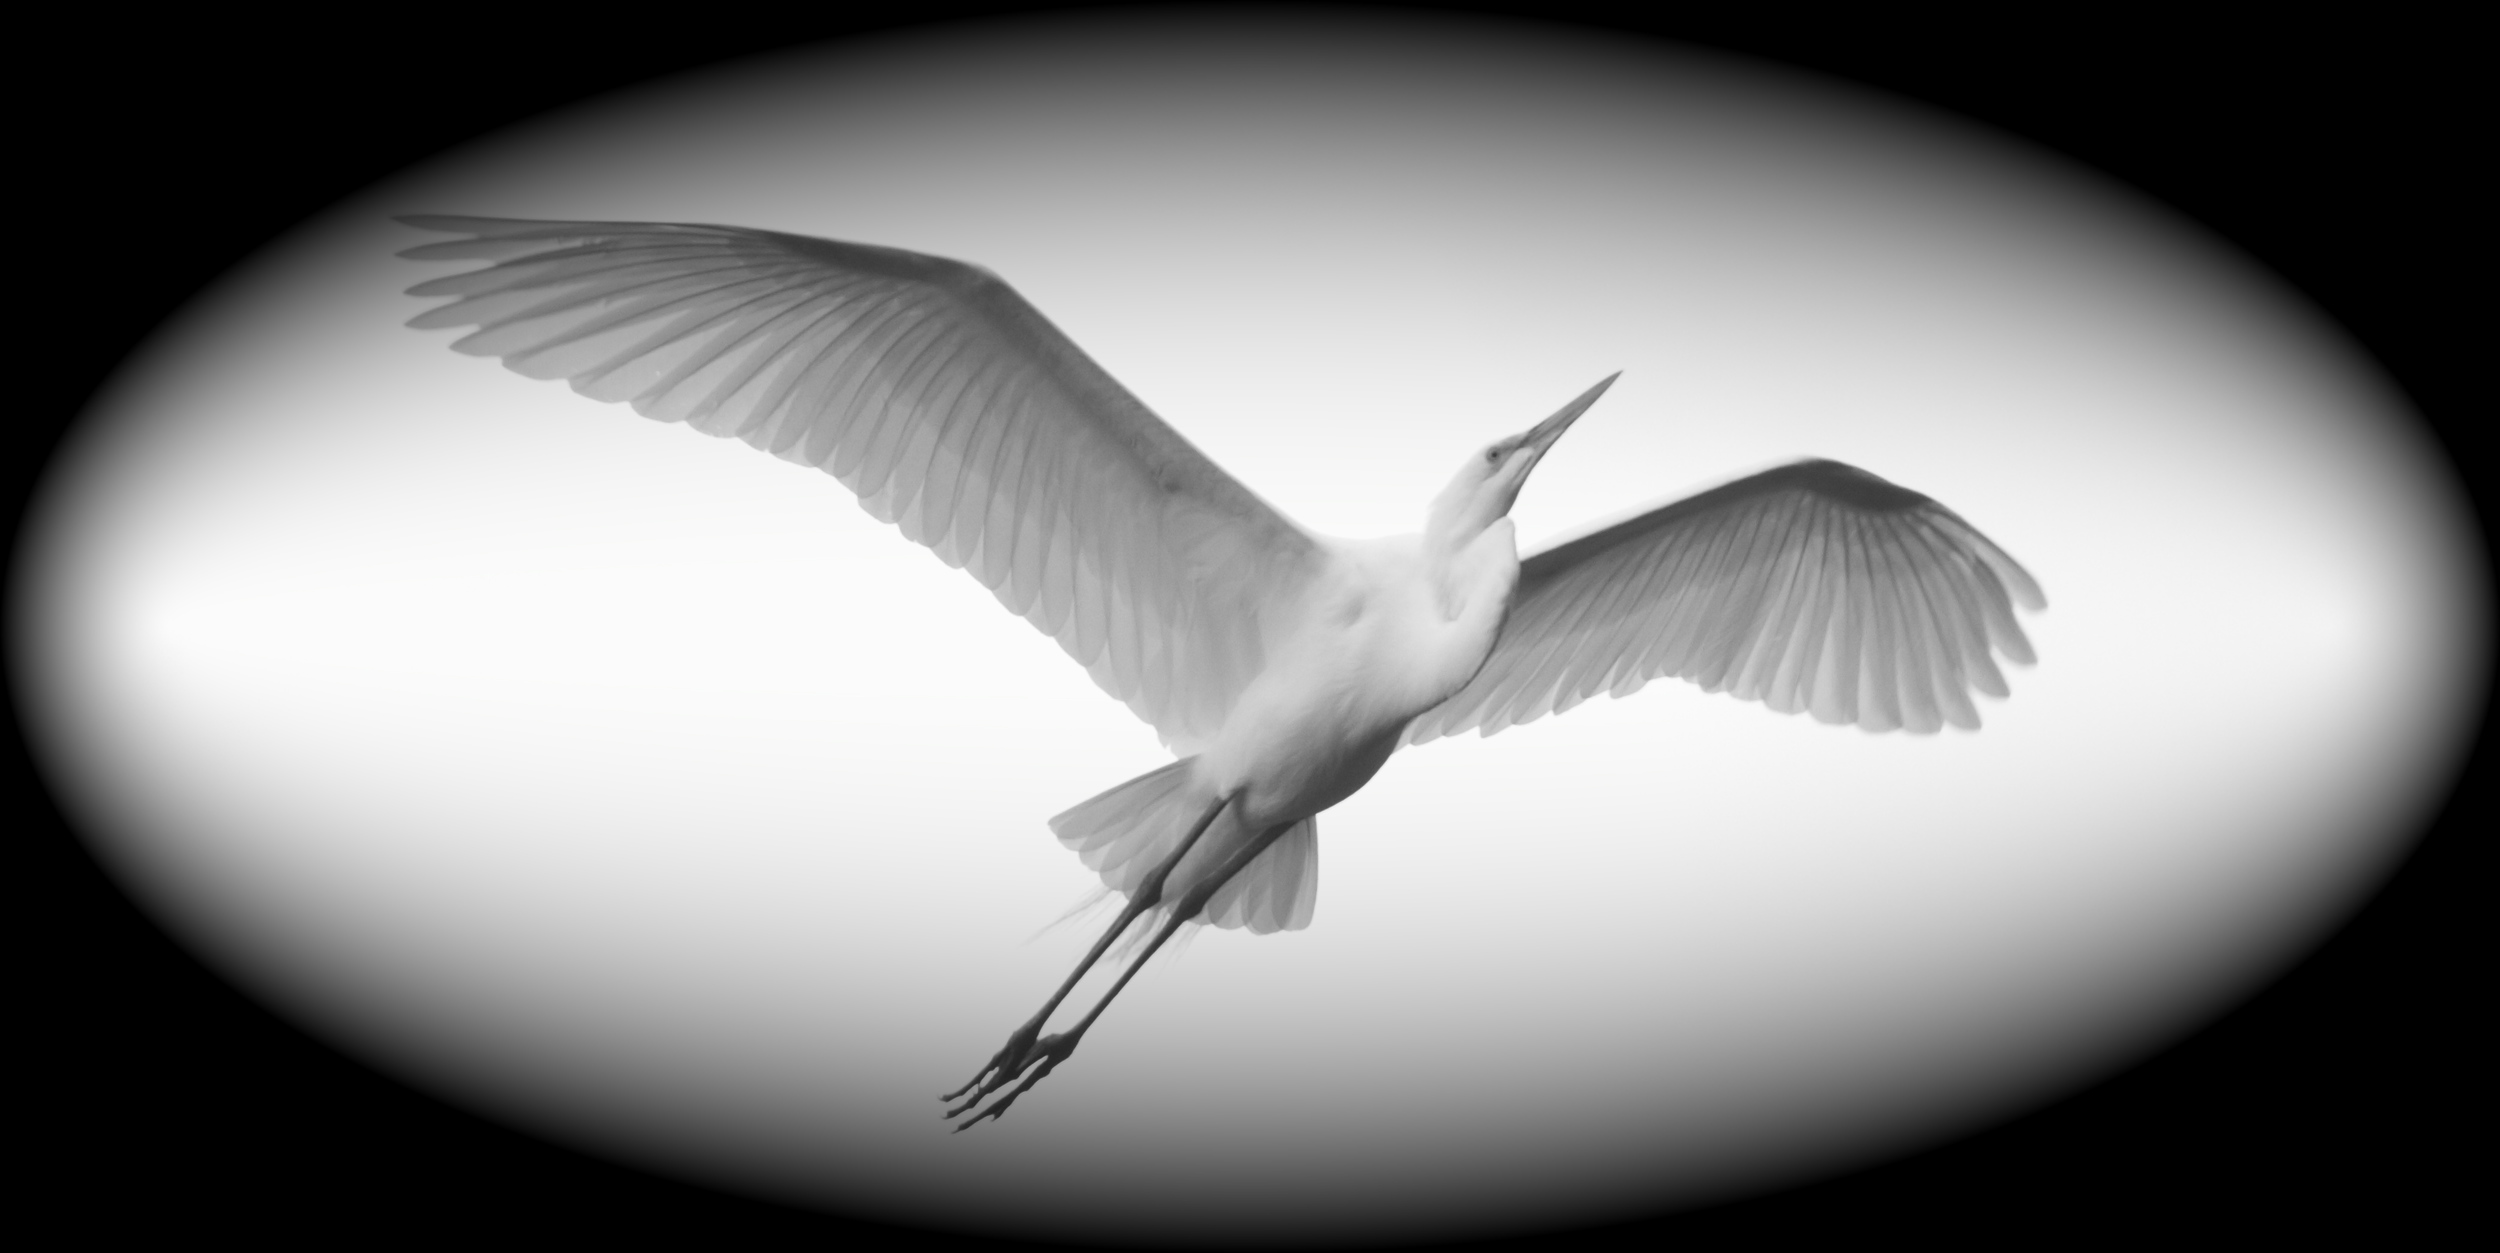 Great Egret glides overhead, the wings translucent against the sky.